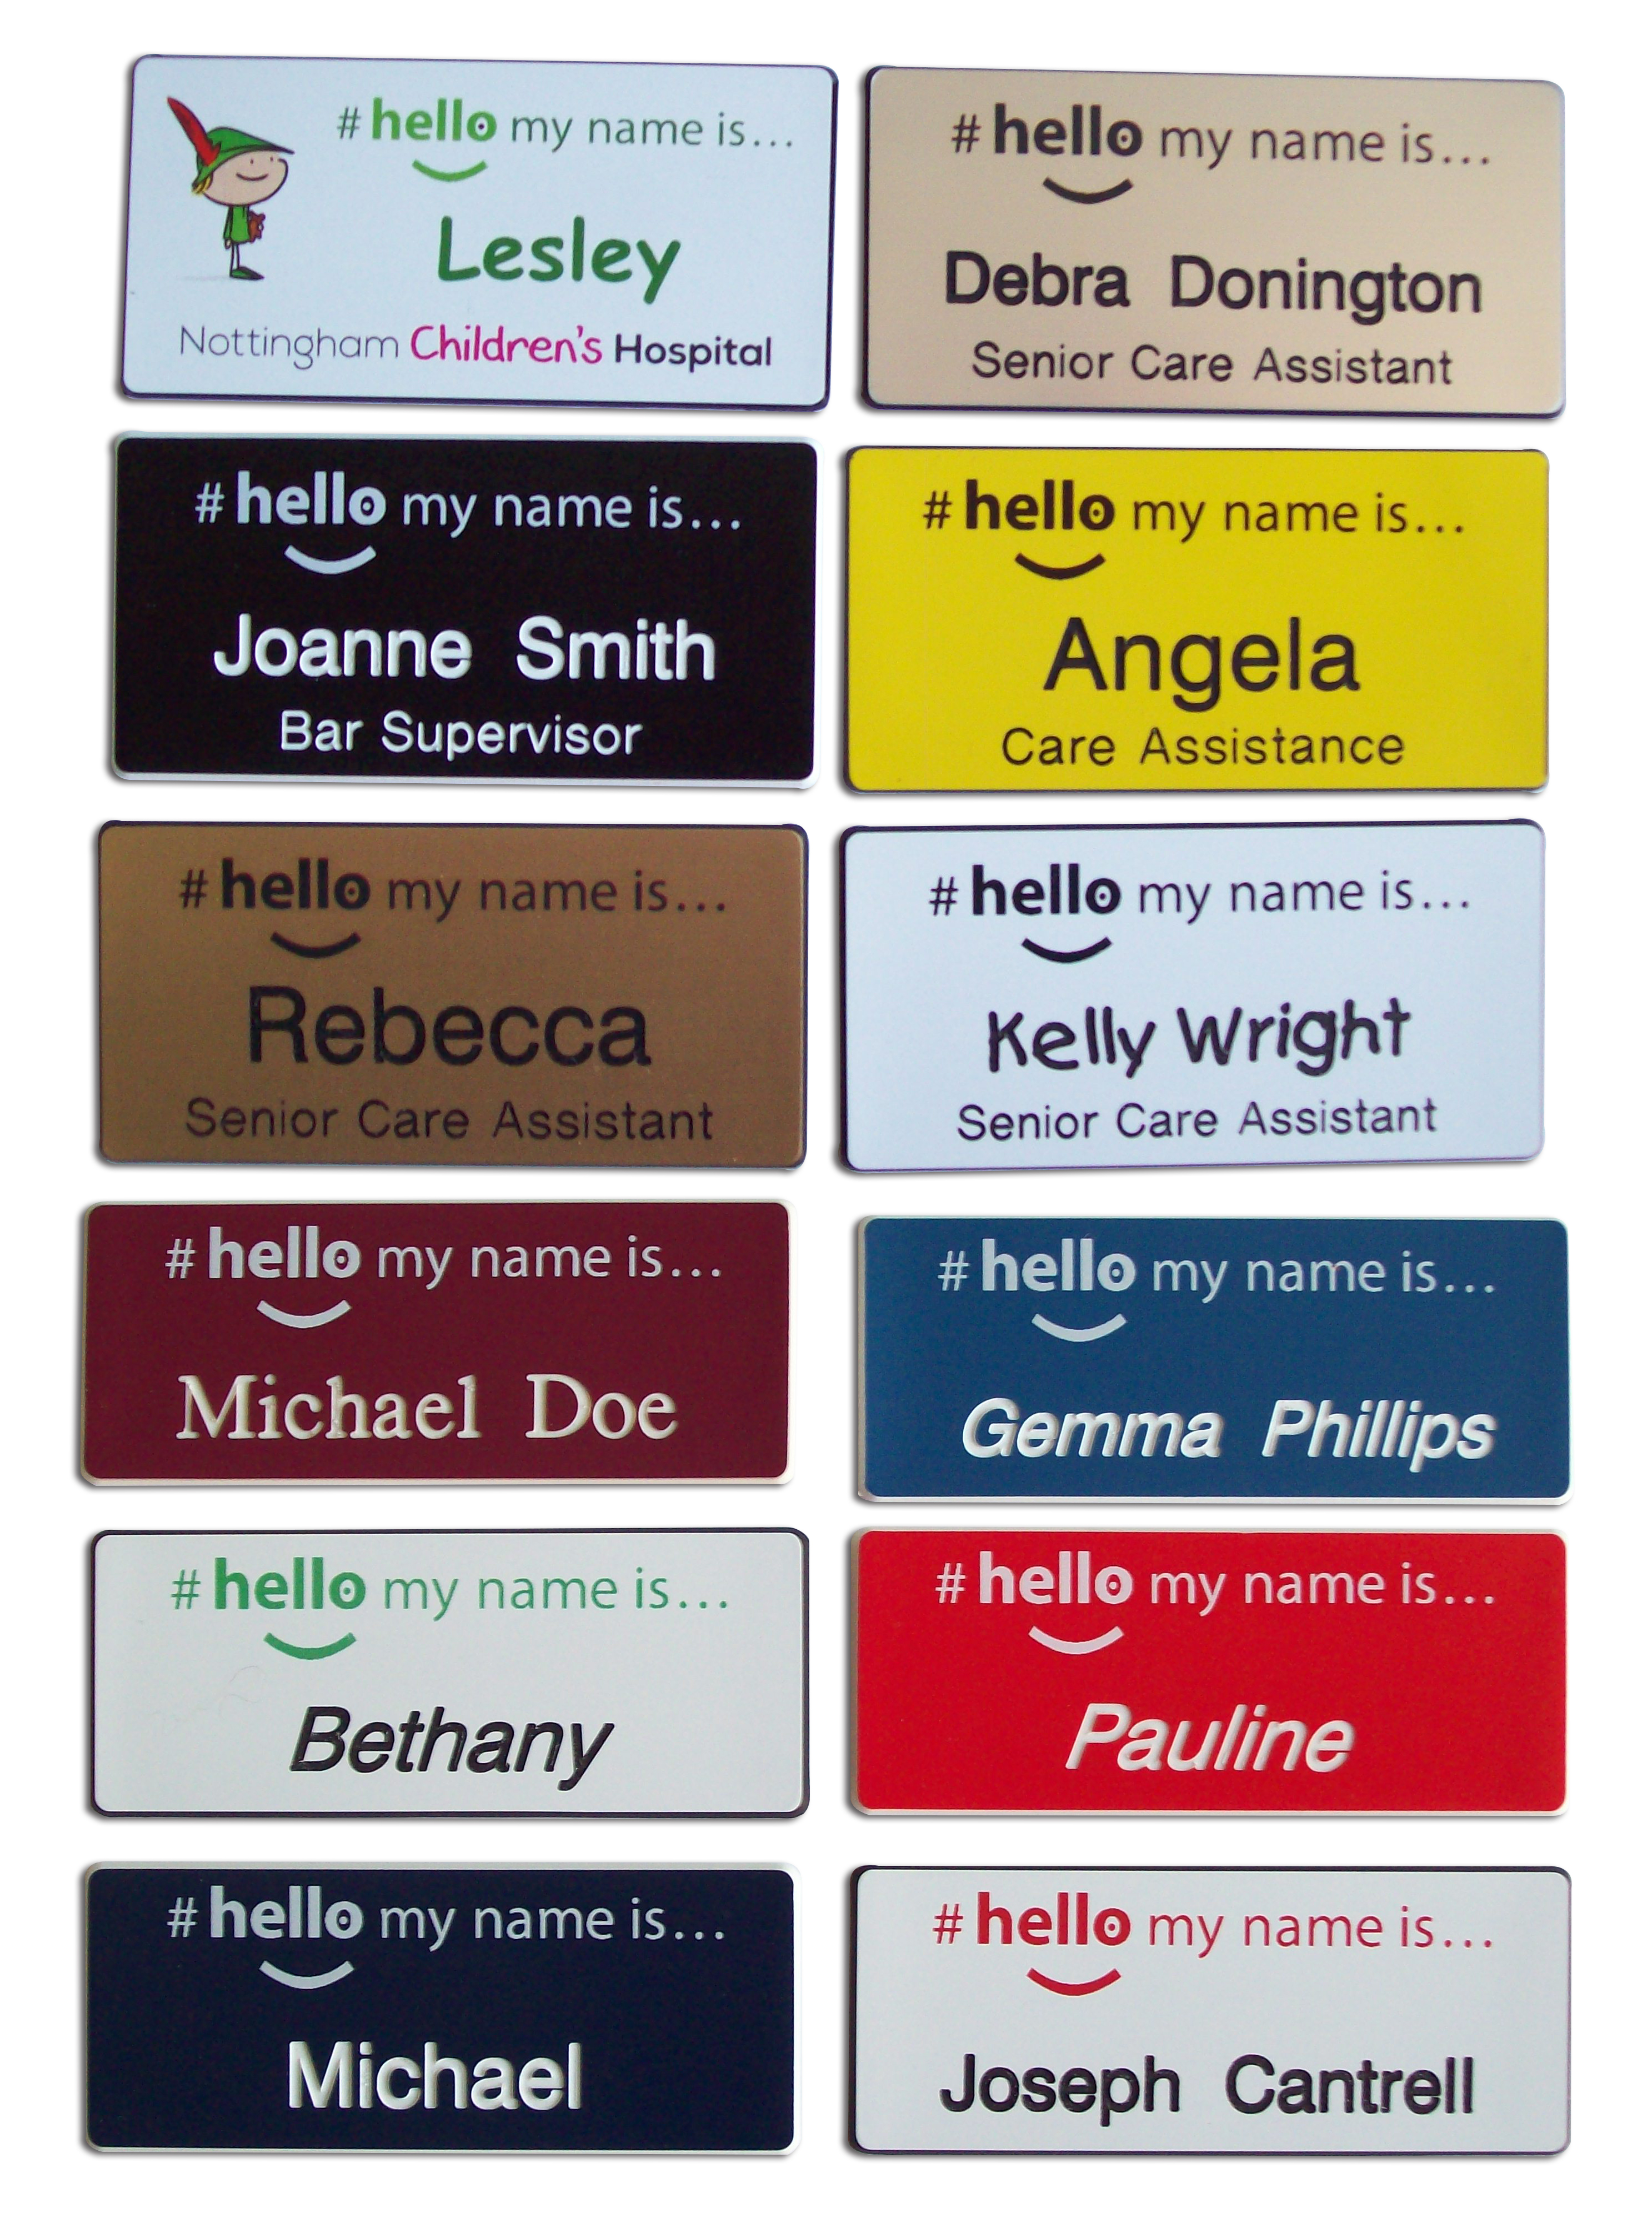 Hello my name is... badges